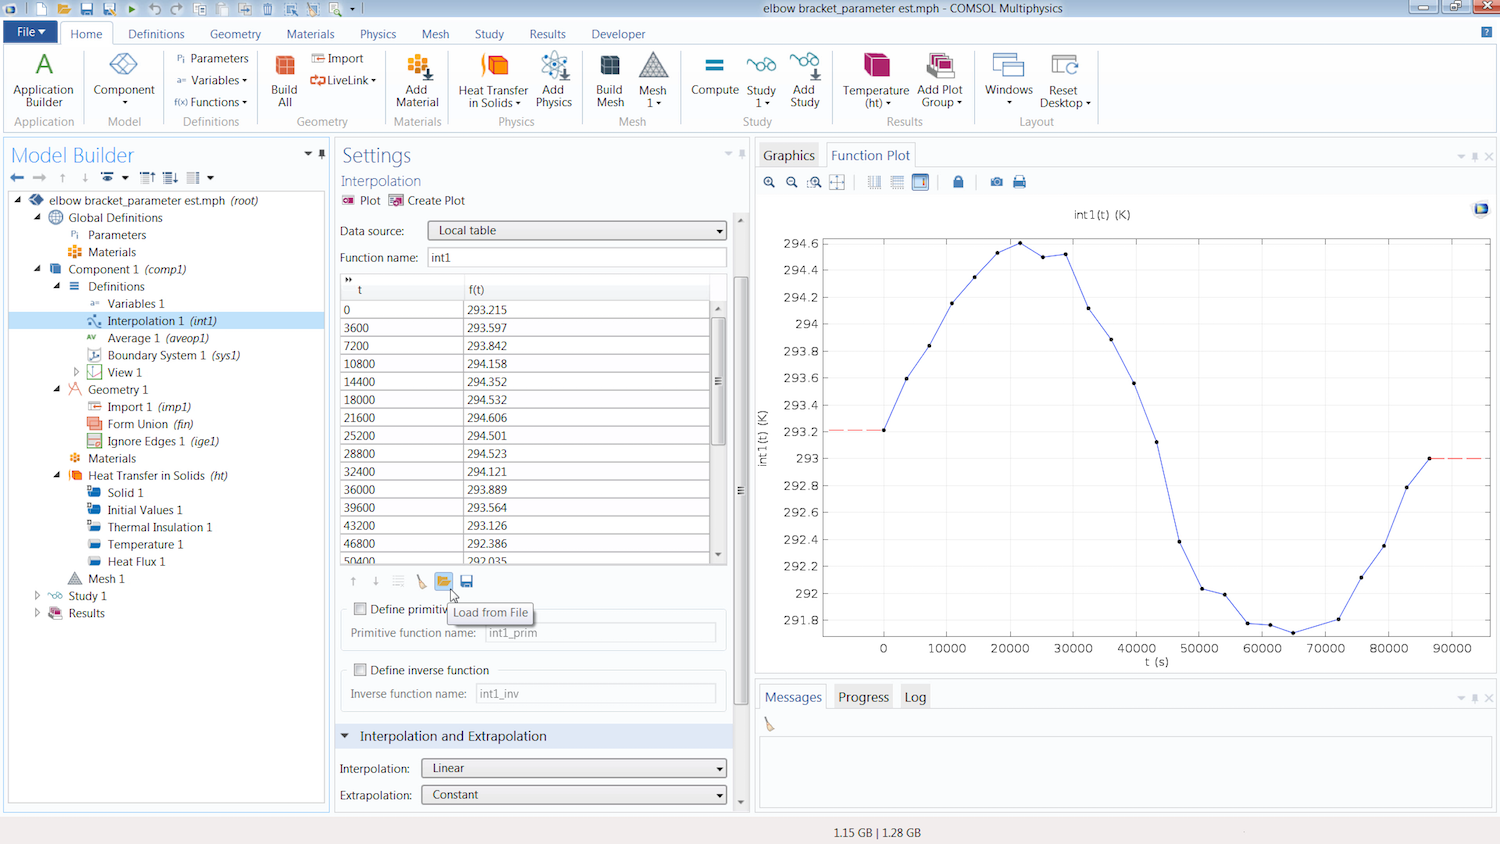 A screenshot of the COMSOL Multiphysics® GUI with a plot of the imported reference data.